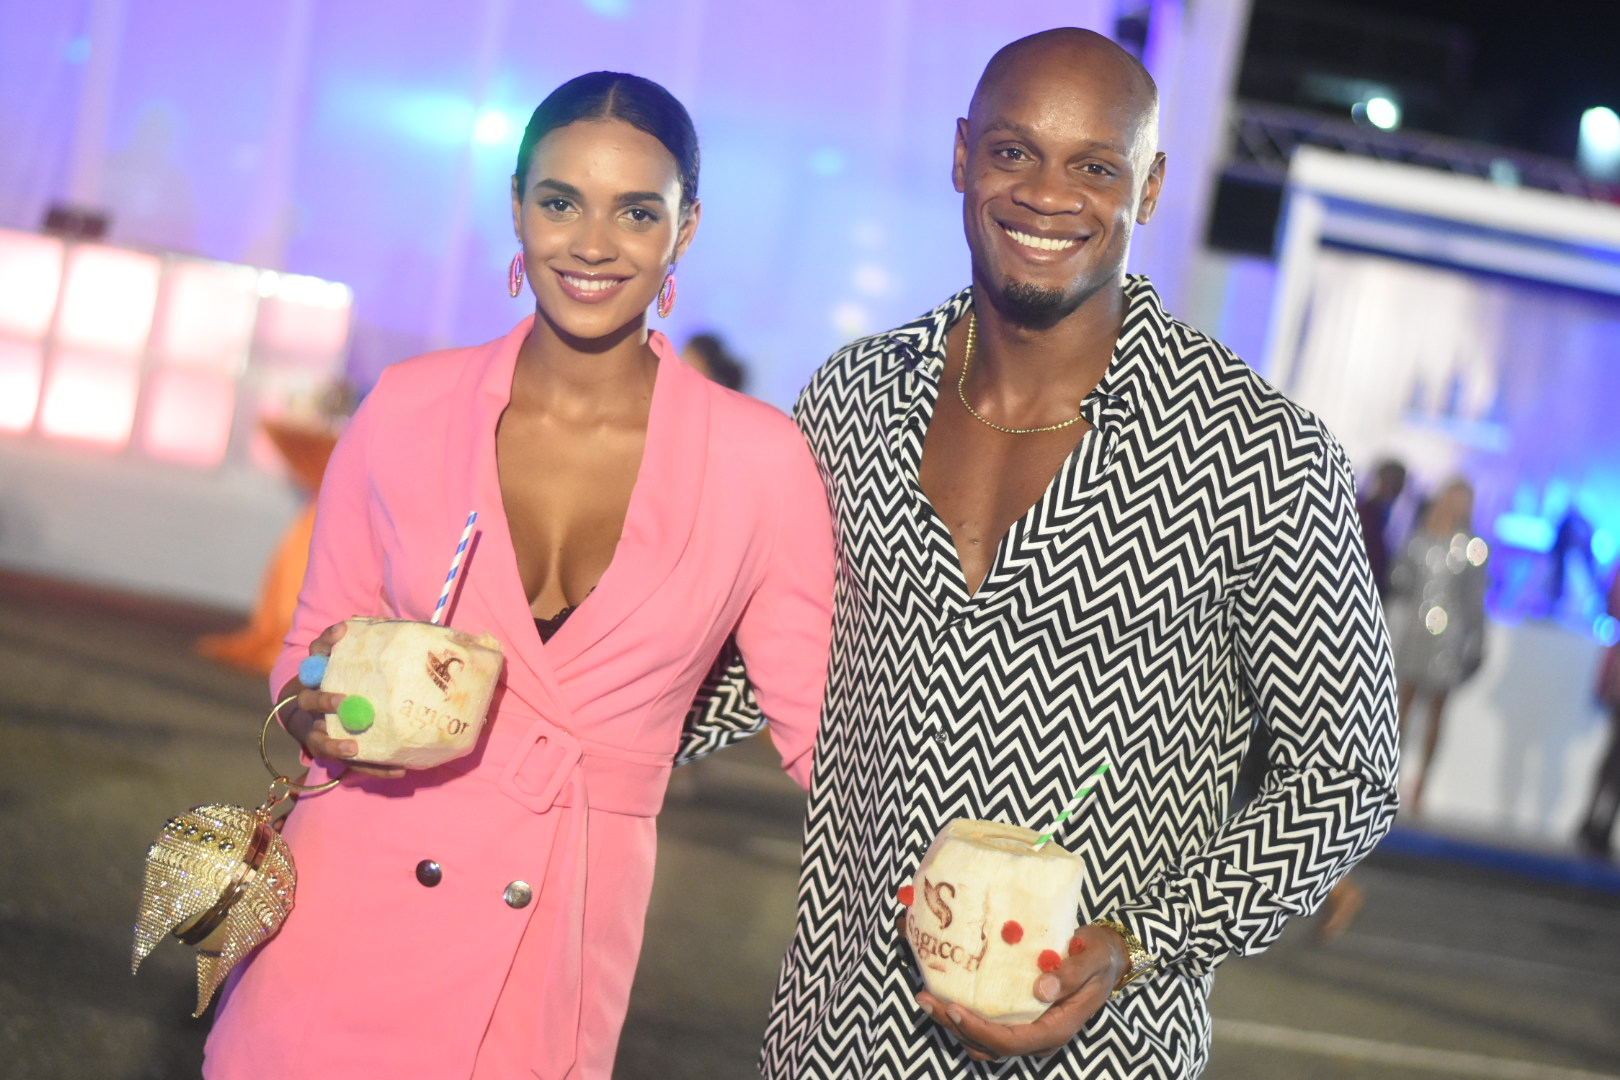 Alyshia and Asafa Powell enjoy coconut water from the Sagicor Coconuts booth. (Photos: Marlon Reid)